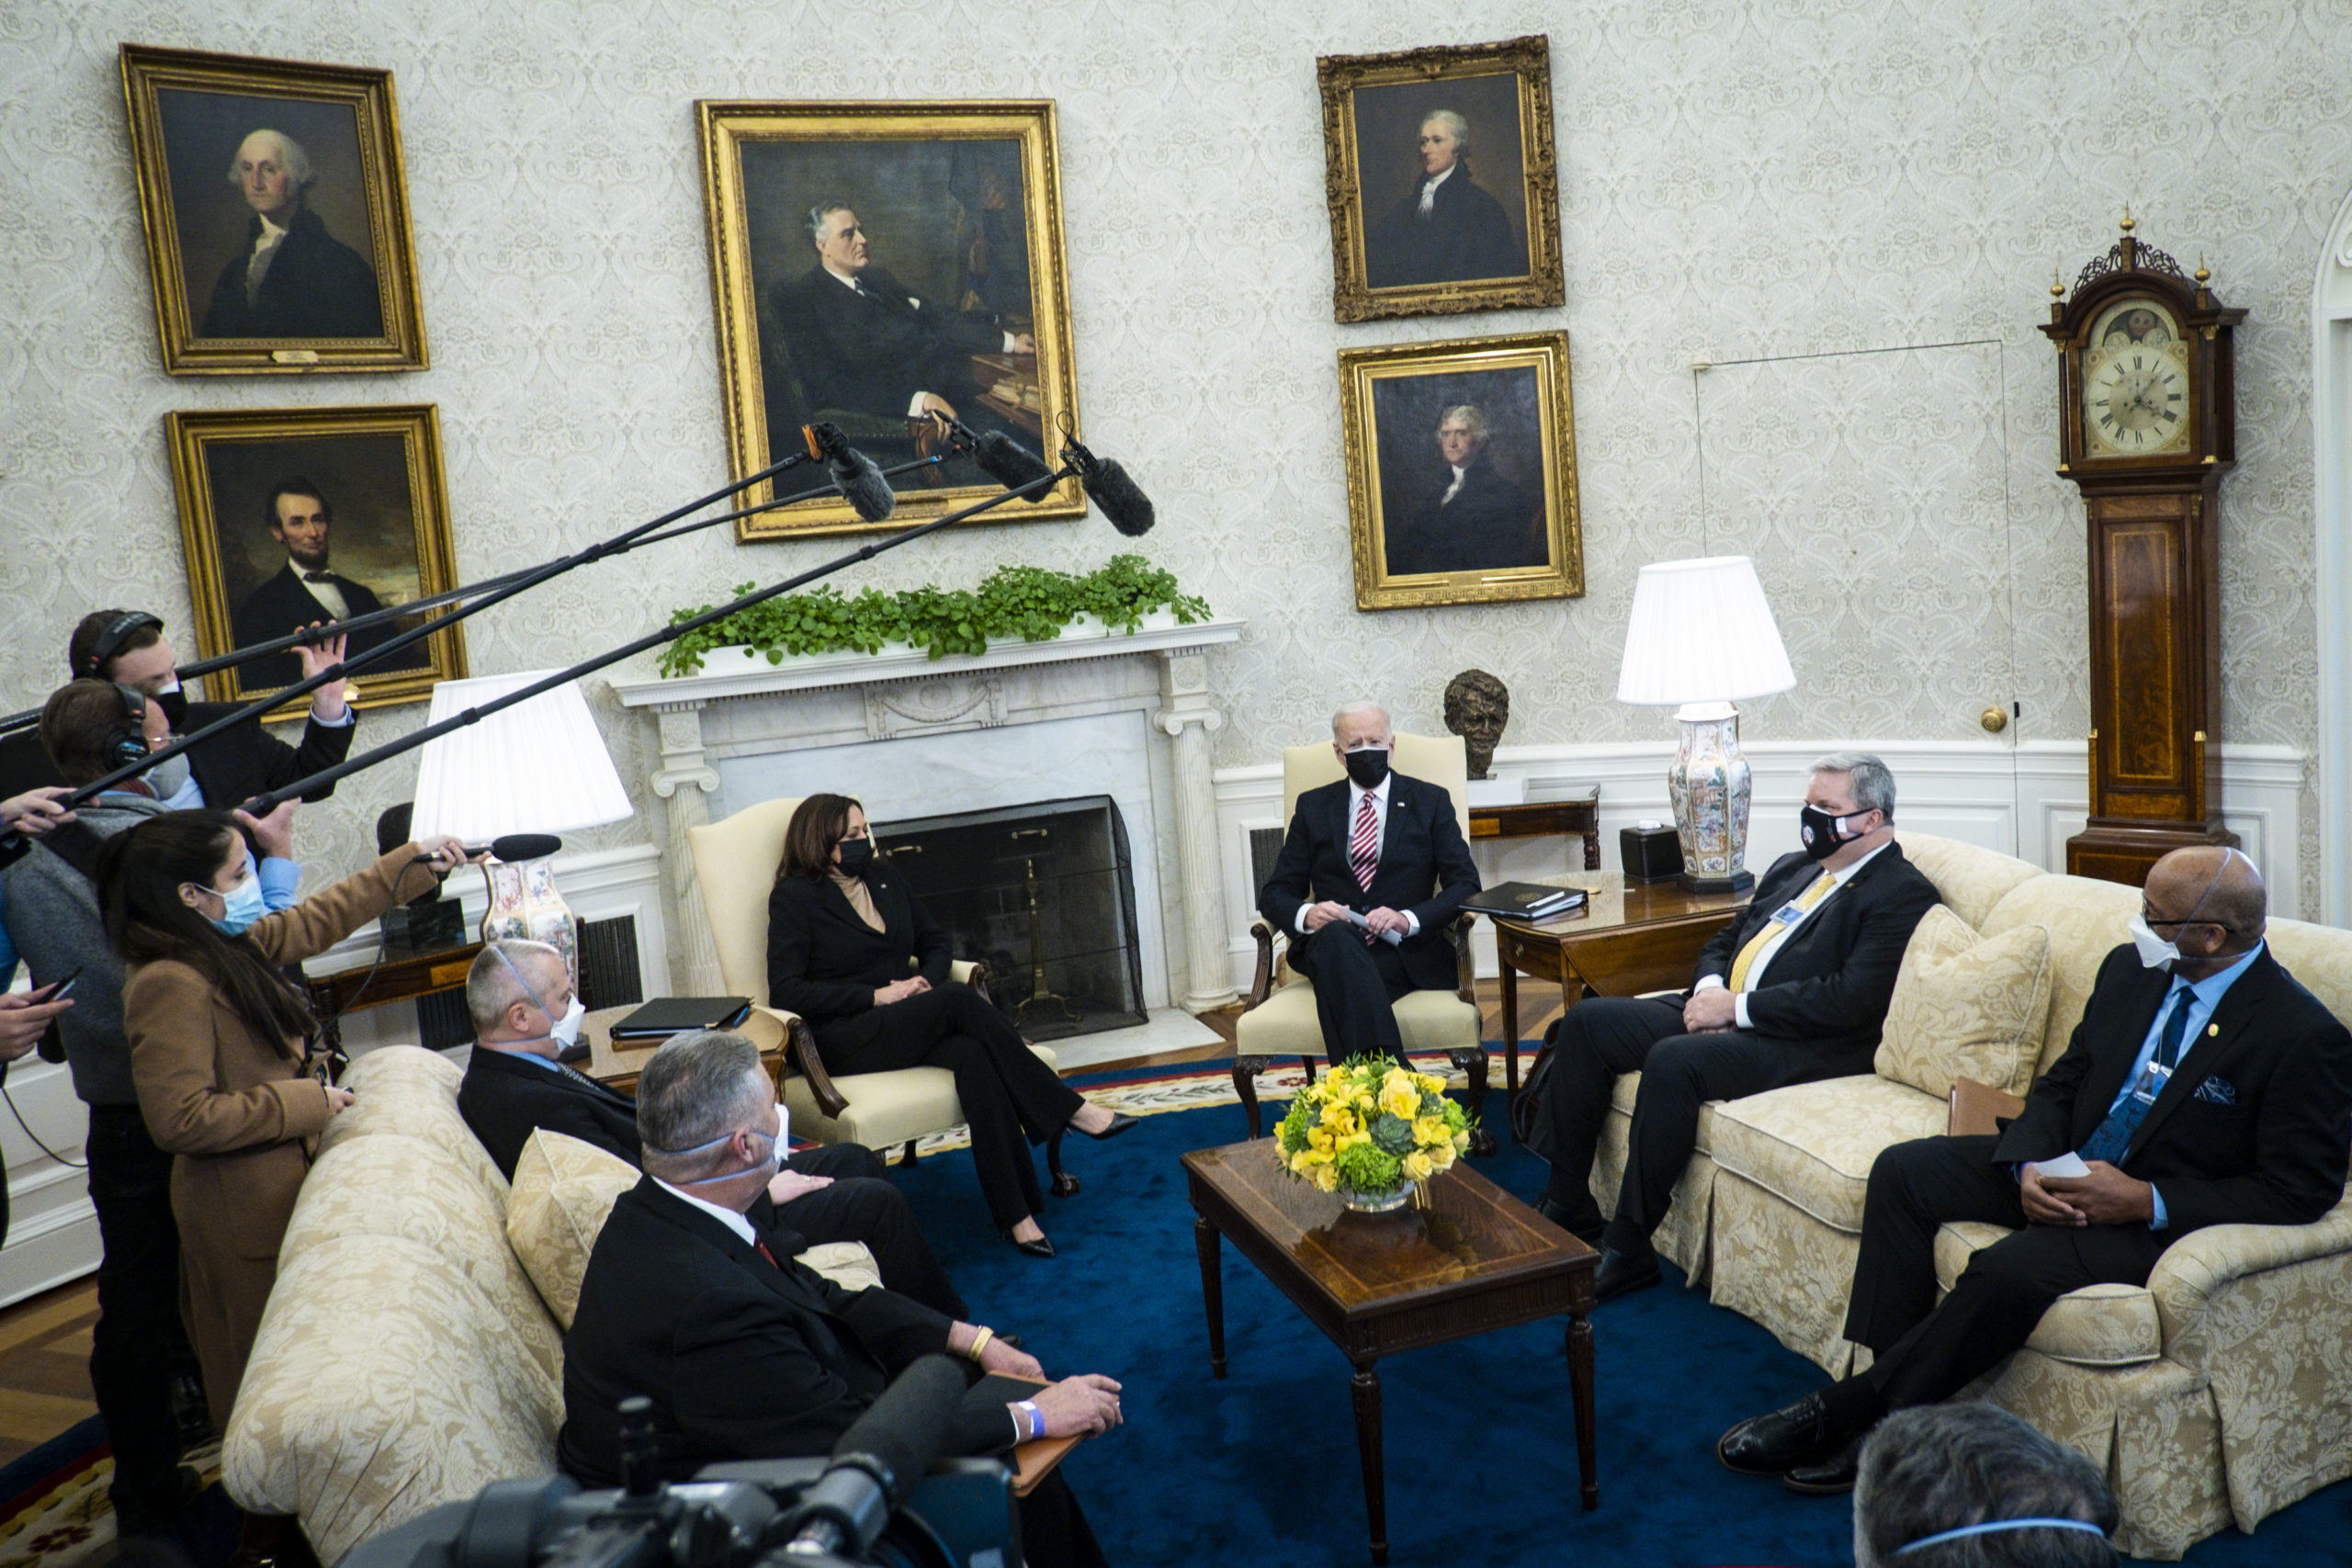 President Joe Biden meets with labor union leaders in the Oval Office on Feb. 17. (Pete Marovich/Pool/Getty Images)